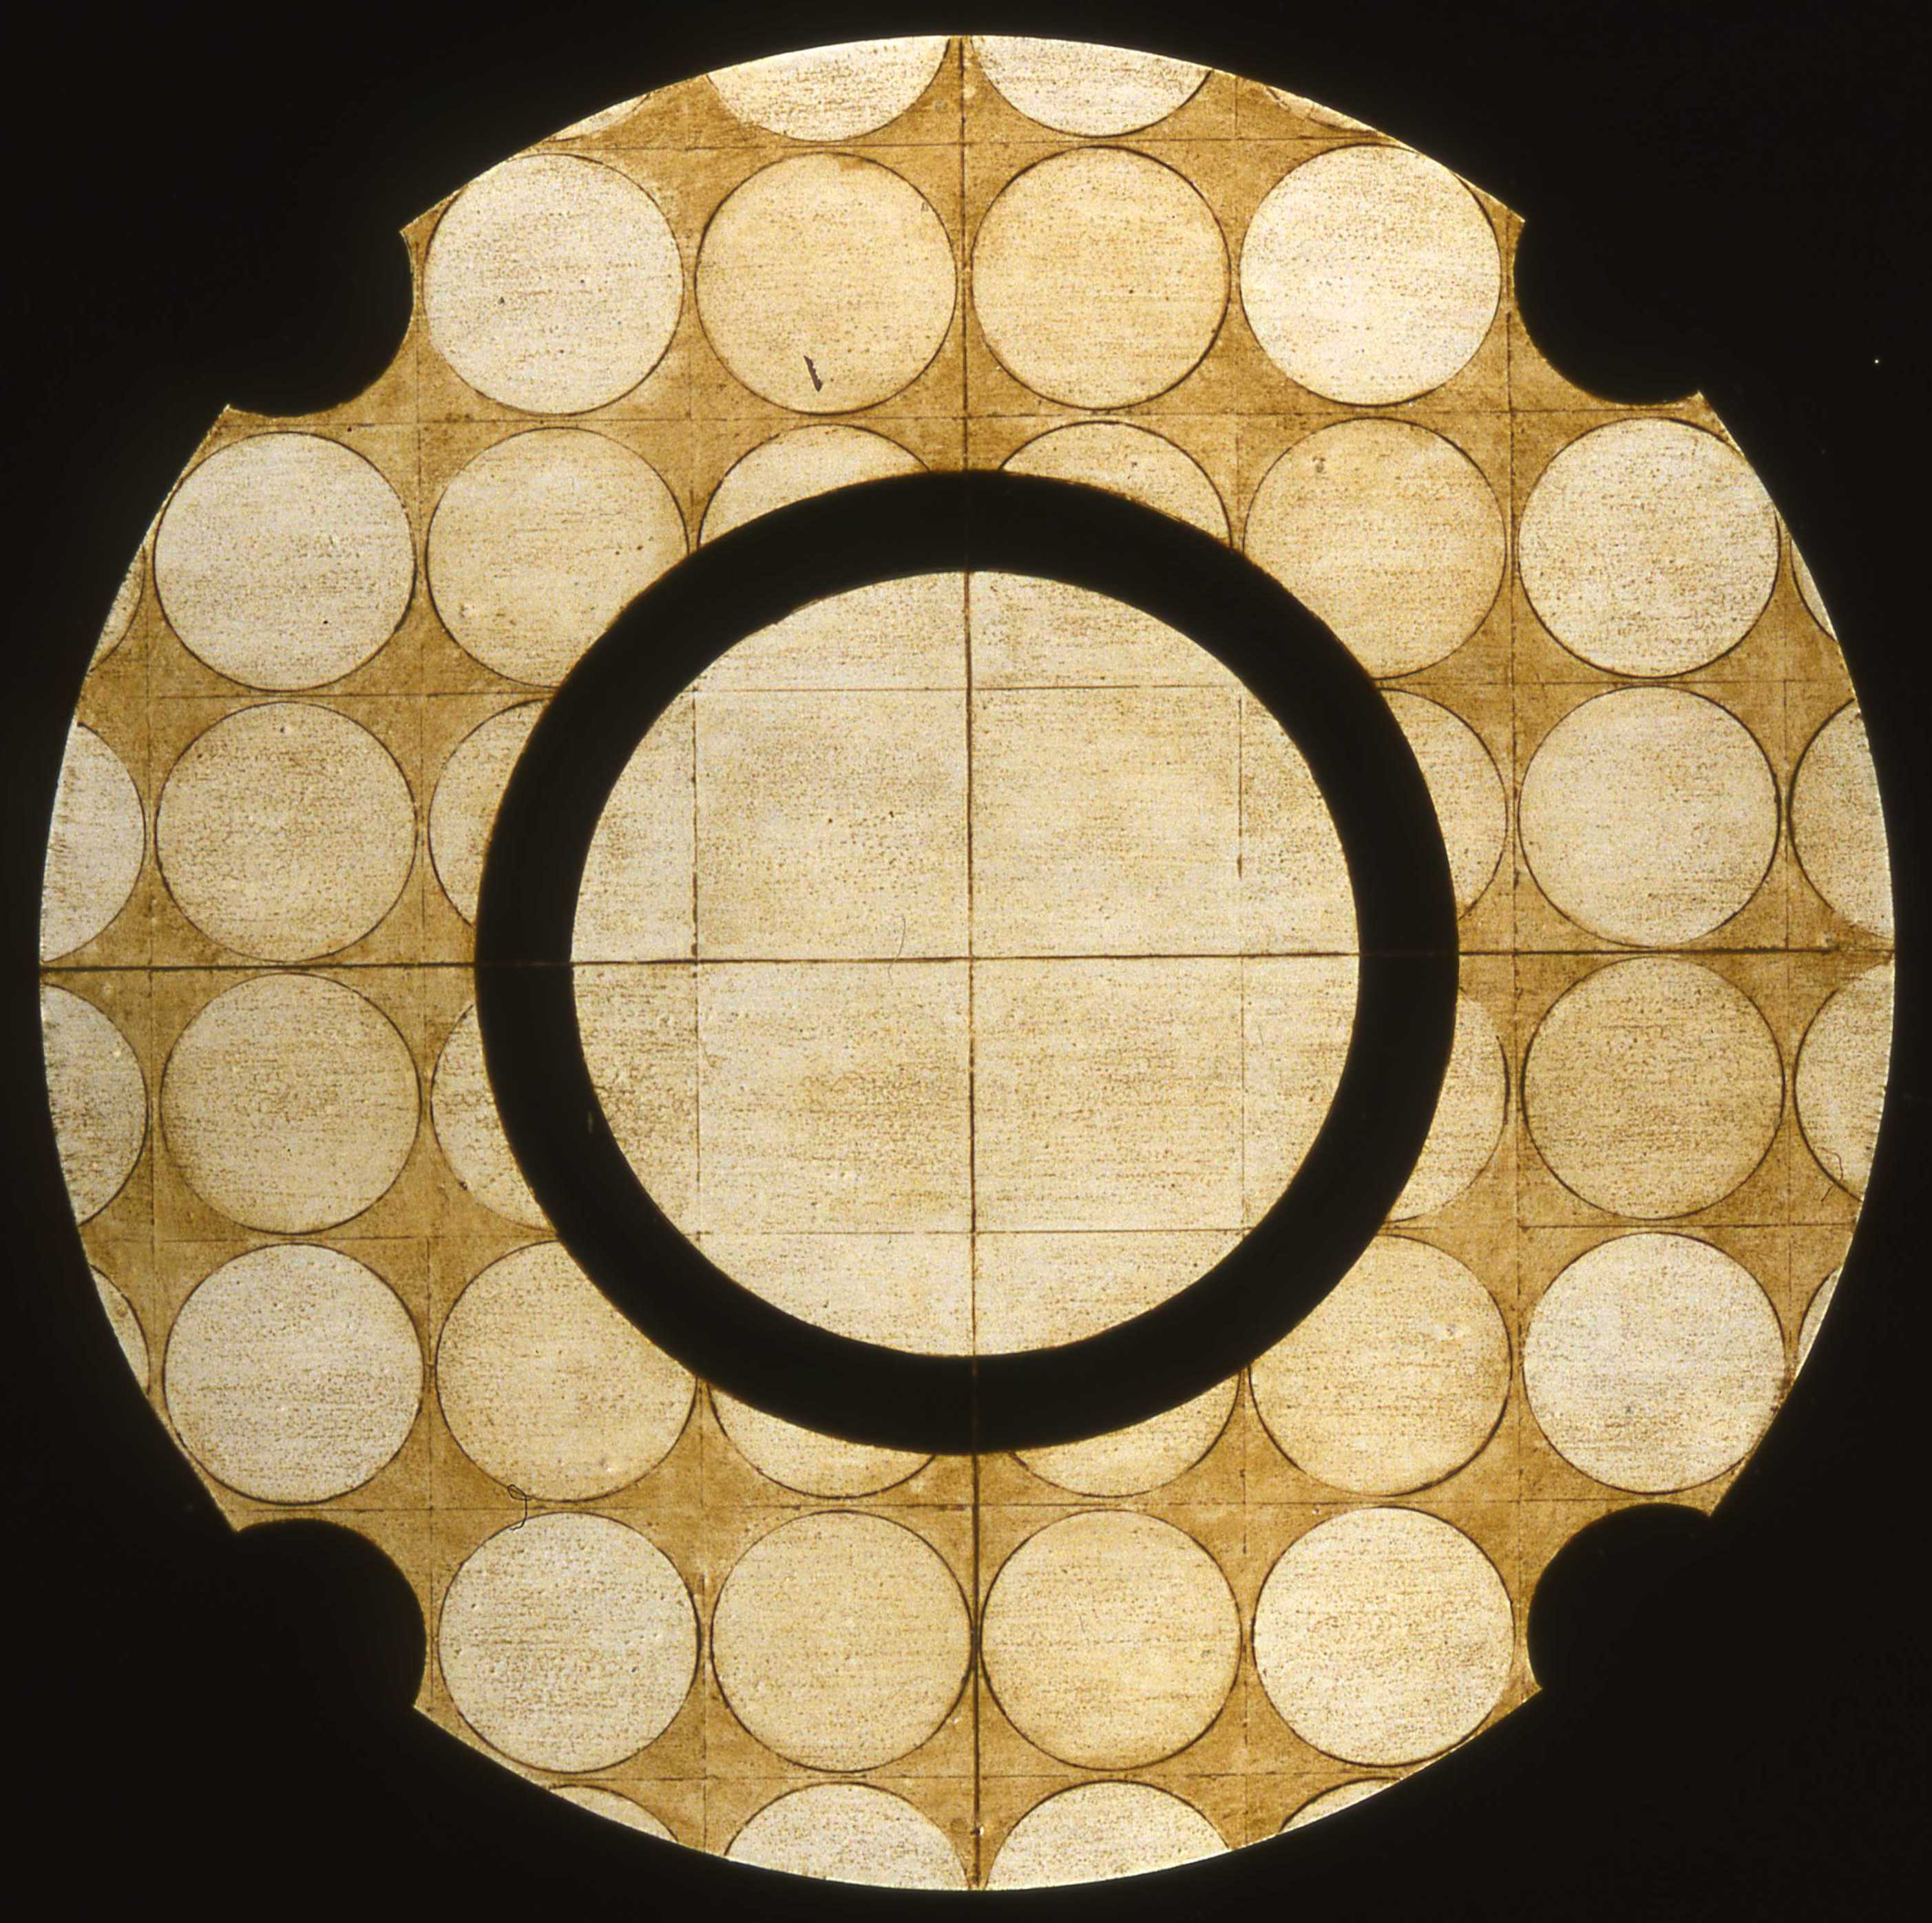 Marco Logsdon, Circle Painting #5, Oil, Tar, Beeswax on Hardboard. 34 inches dia